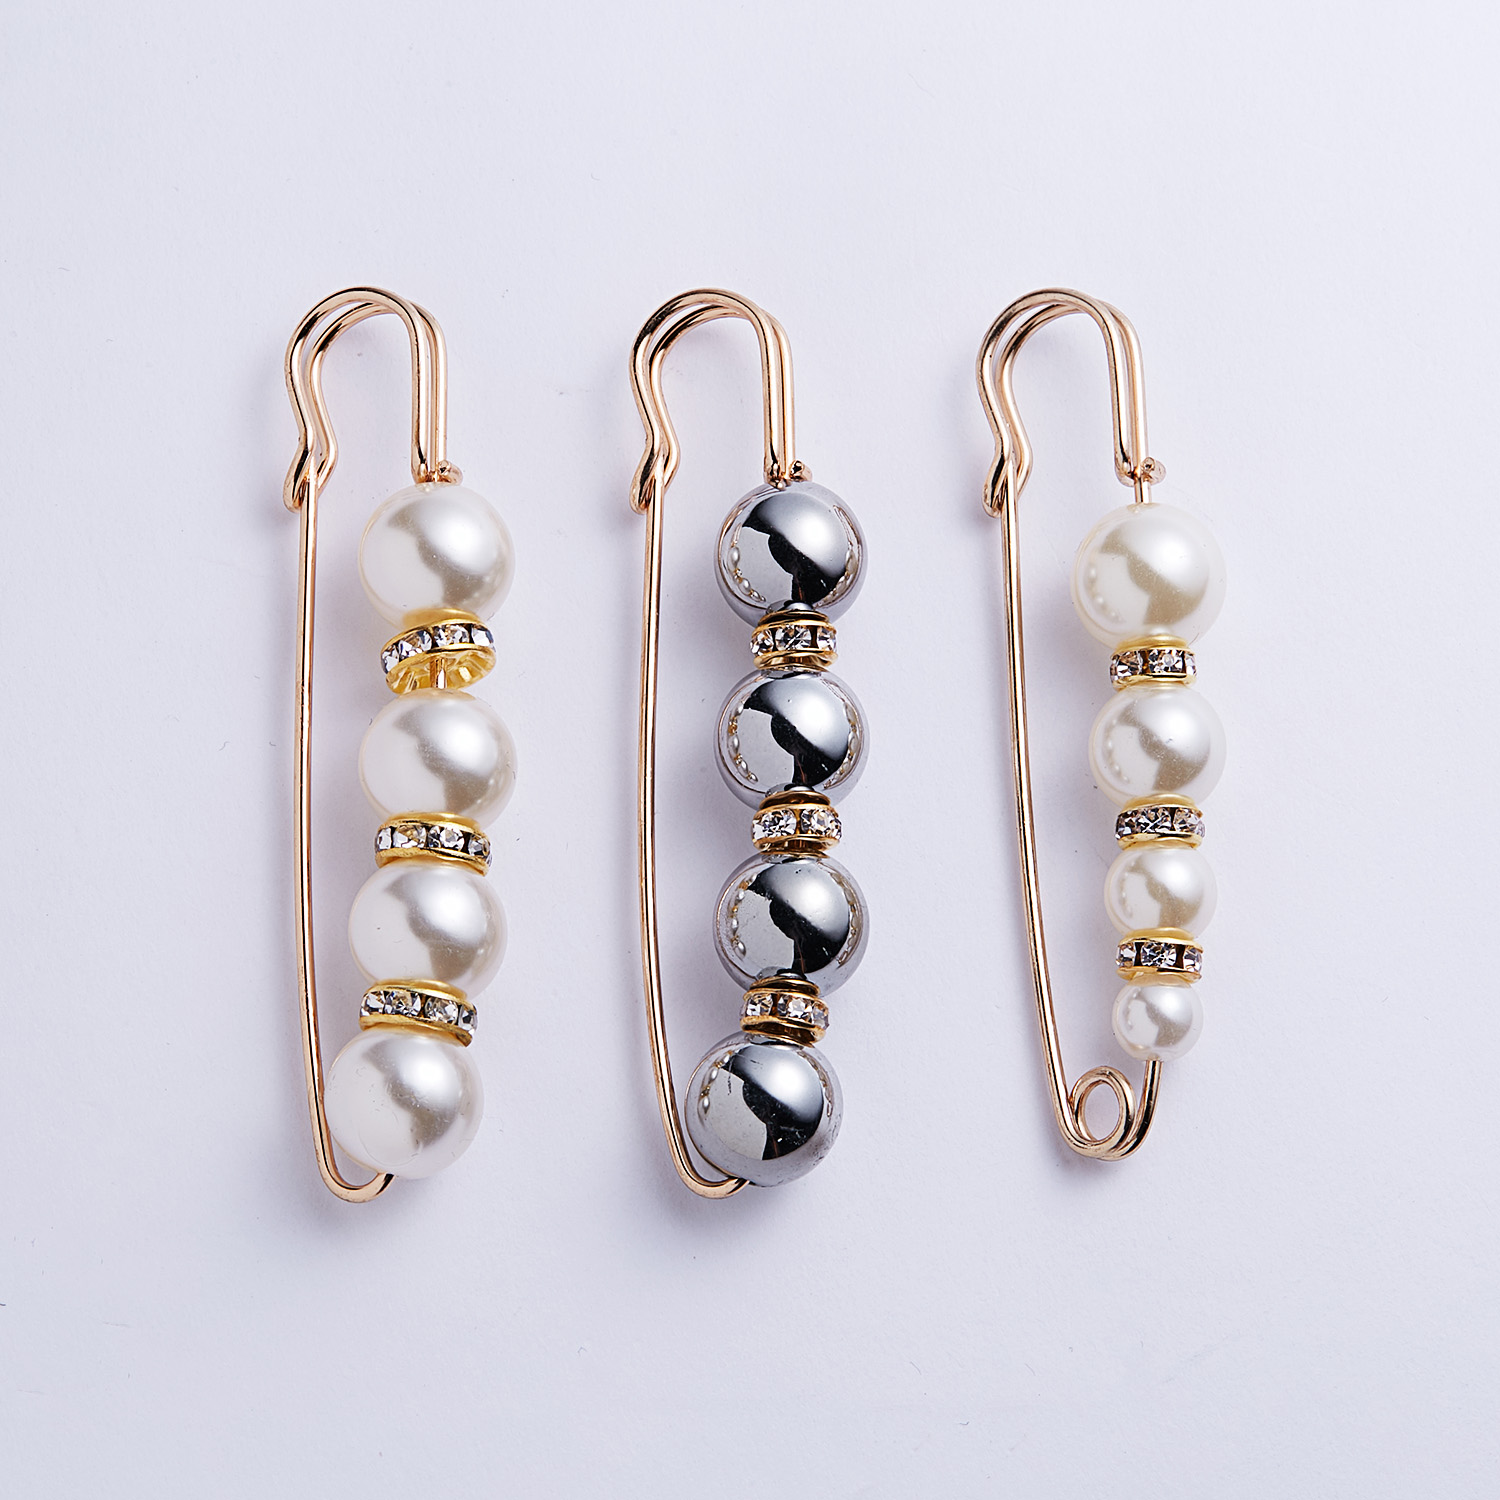 Big Beads 8 Chakra OneckOha Simulated Pearl Brooch Pin Dress Rhinestone Decoration Buckle Pin Jewelry Brooches For Men Women 13